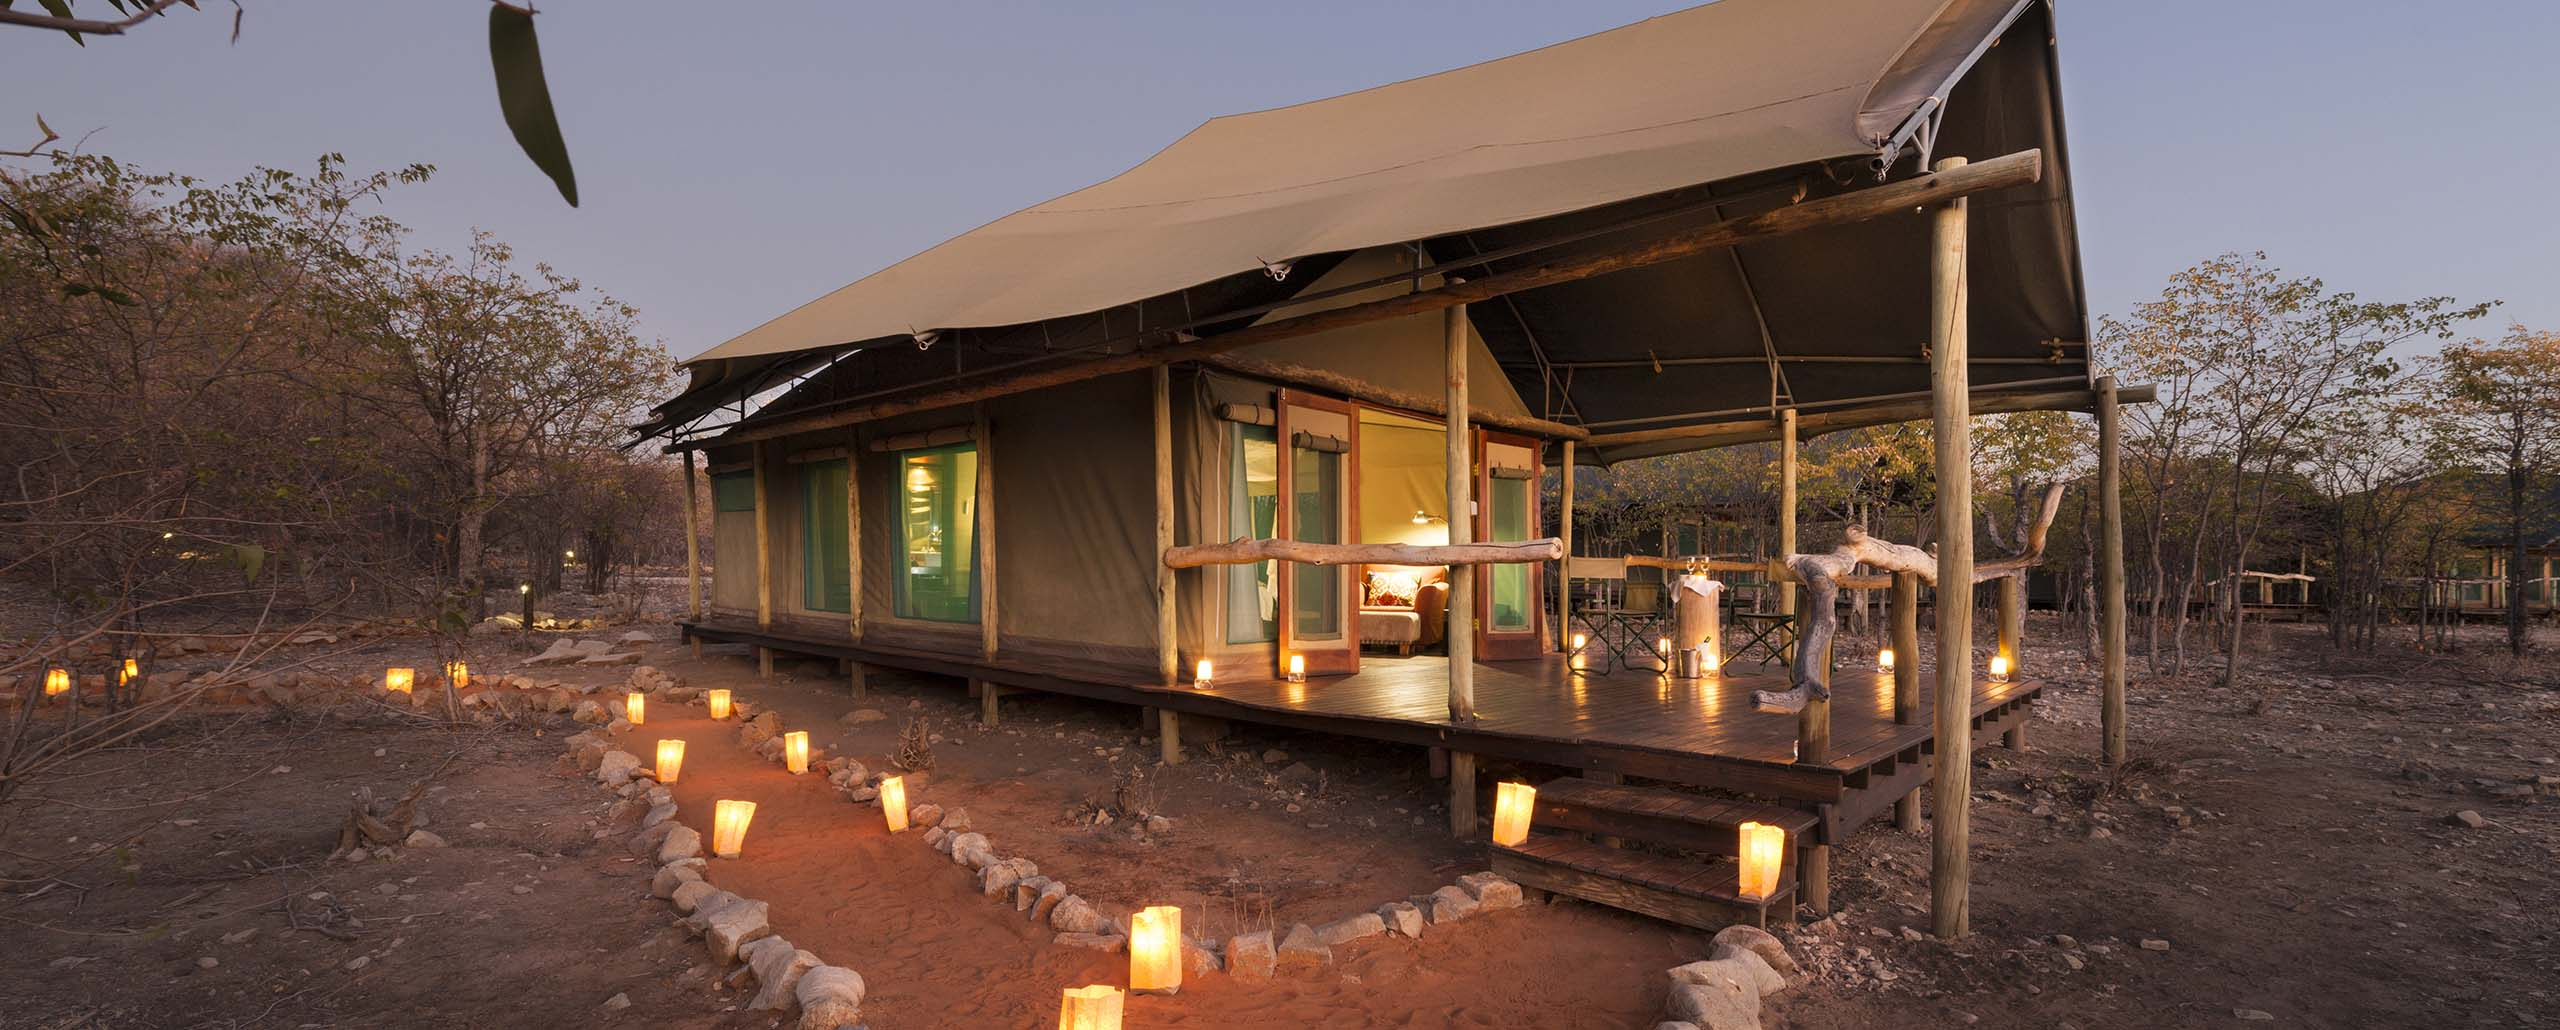 Our experience at Ongava Tented Camp in Ongava Game Reserve, Namibia